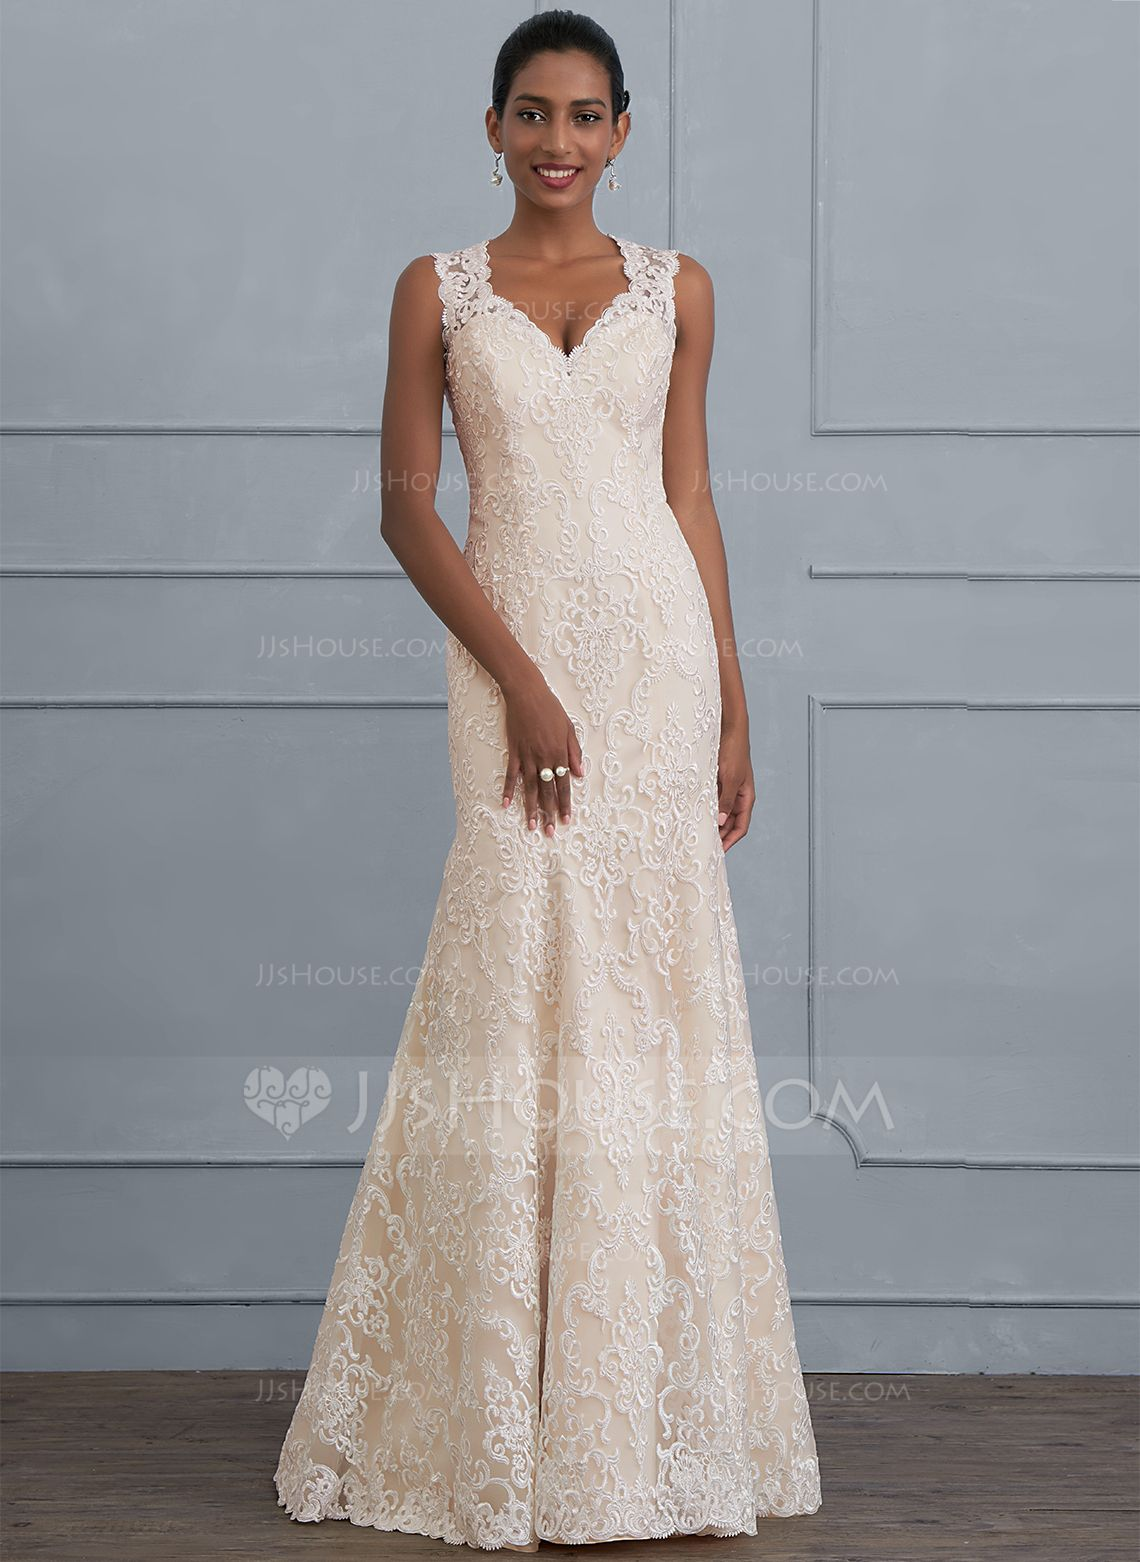 Awesome Dotted Swiss Wedding Dress Gallery - Styles & Ideas 2018 ...